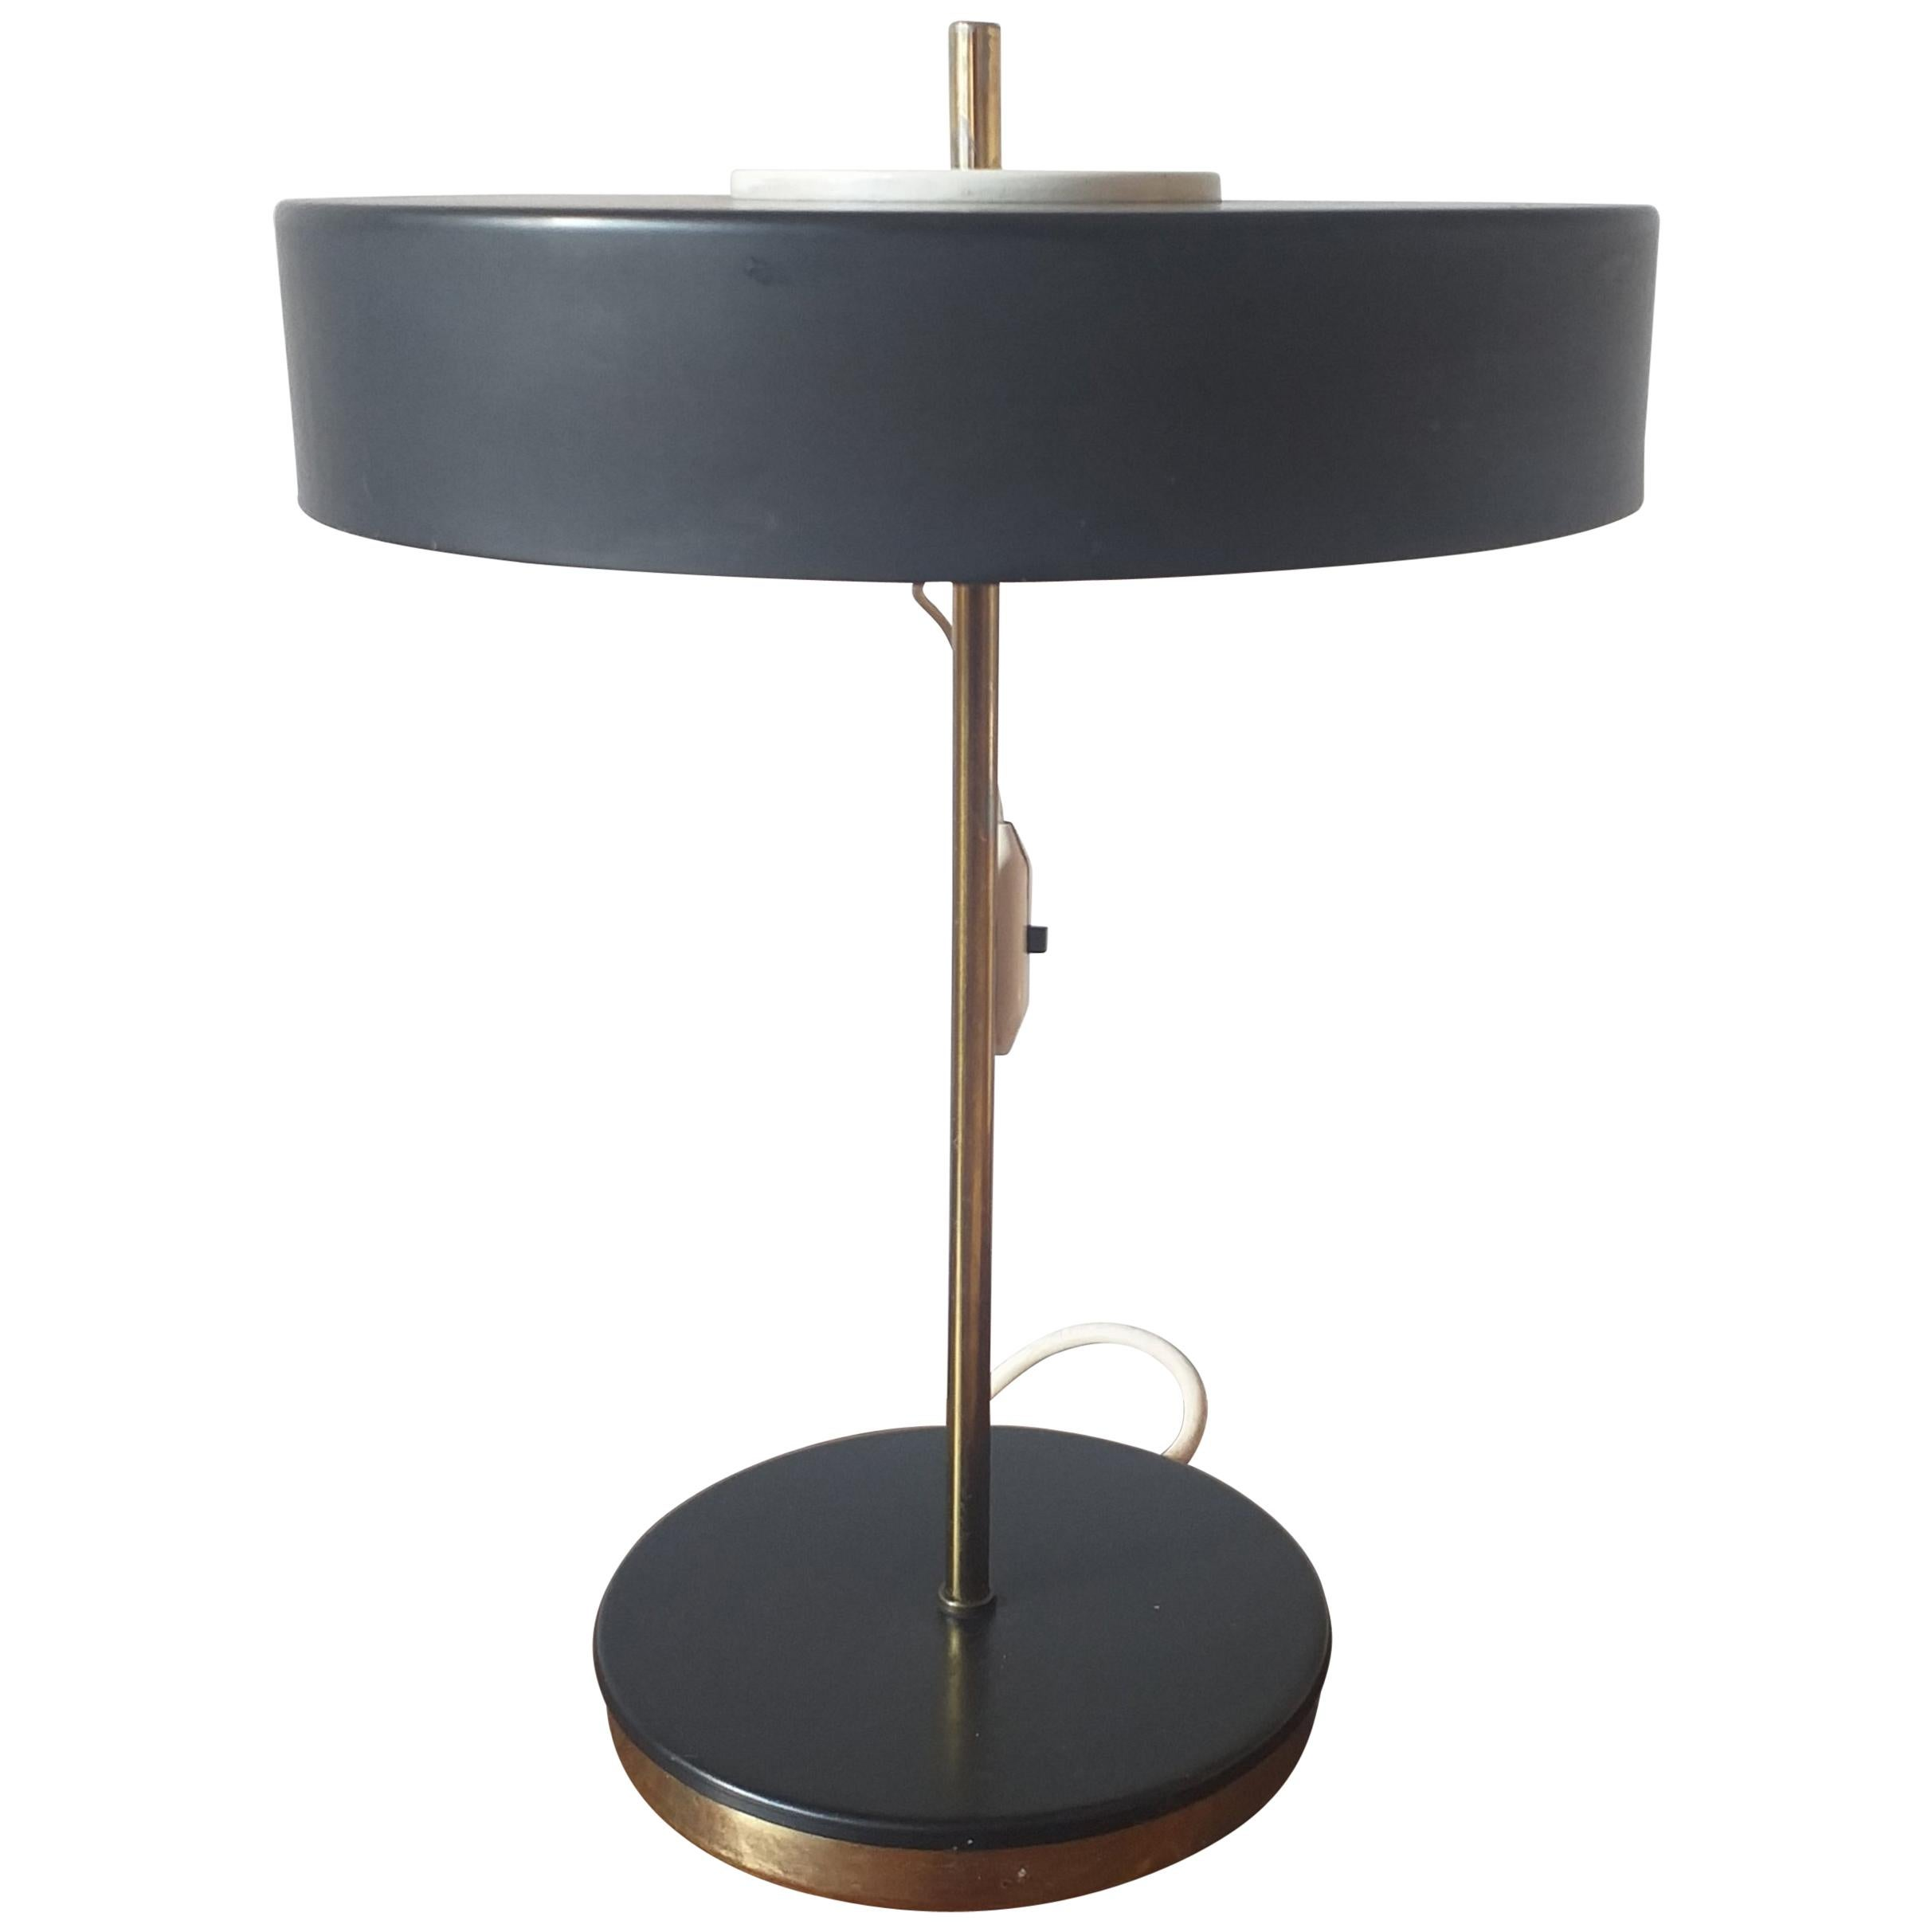 Midcentury Table Lamp Kamenicky Senov, 1970s